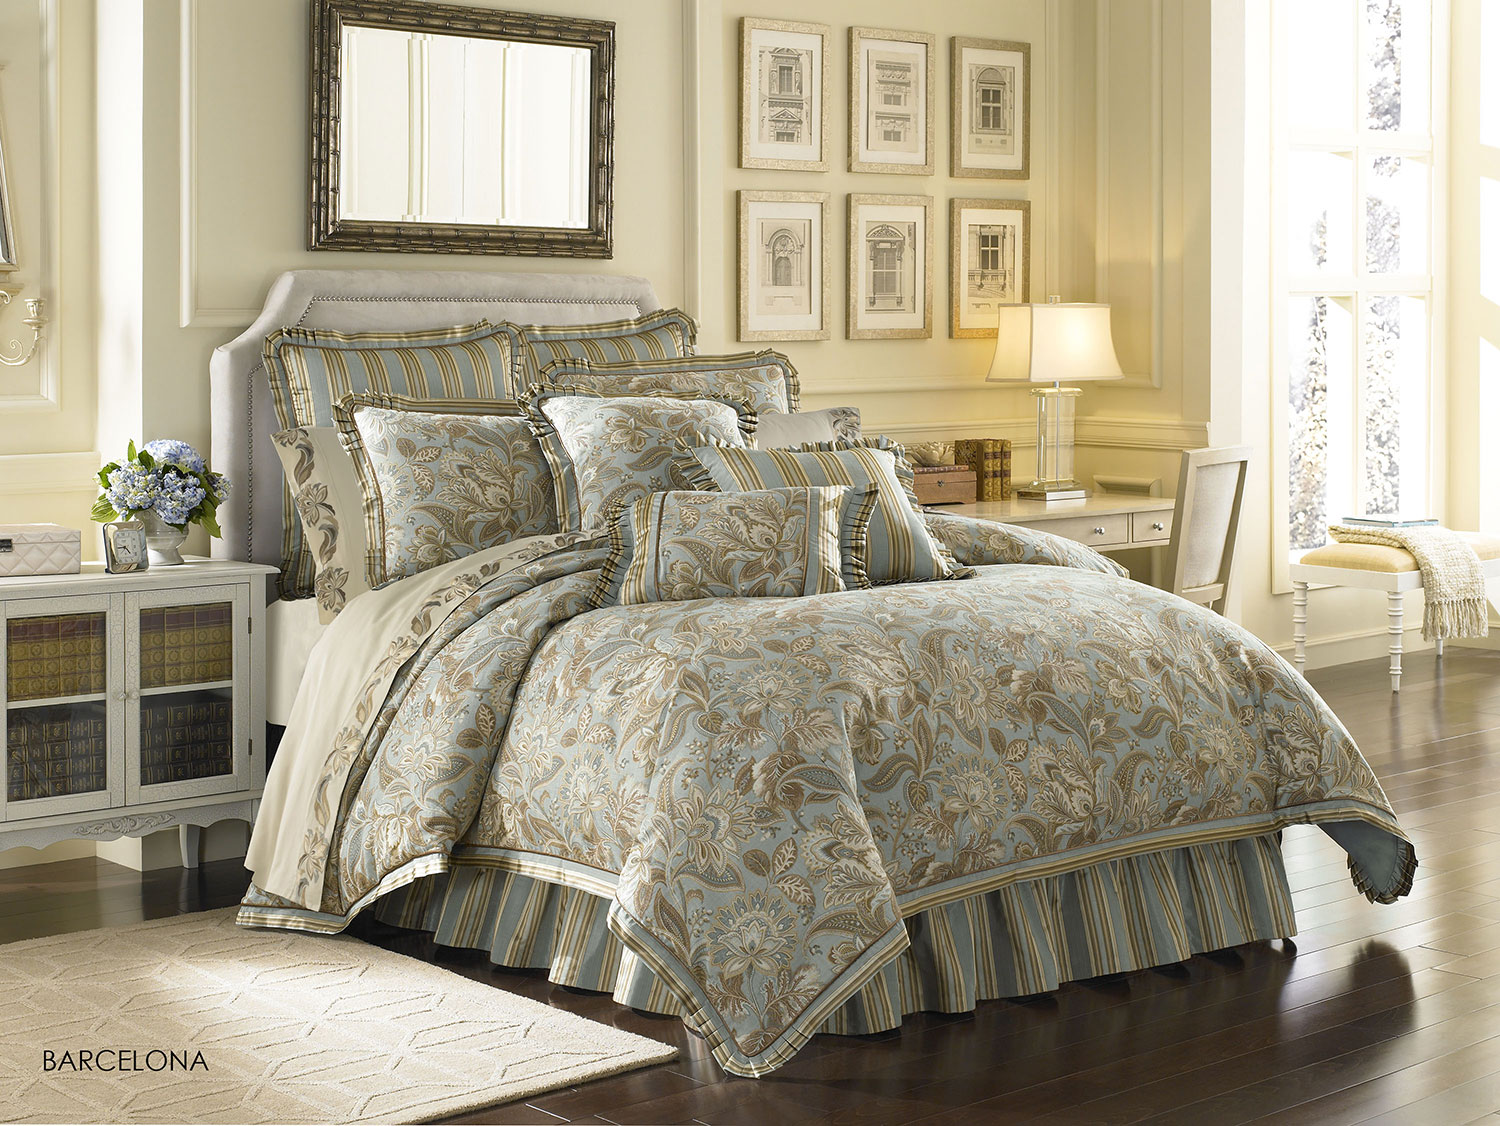 zoom in barcelona by j queen new york u2013 categories bedding previous article - J Queen New York Bedding